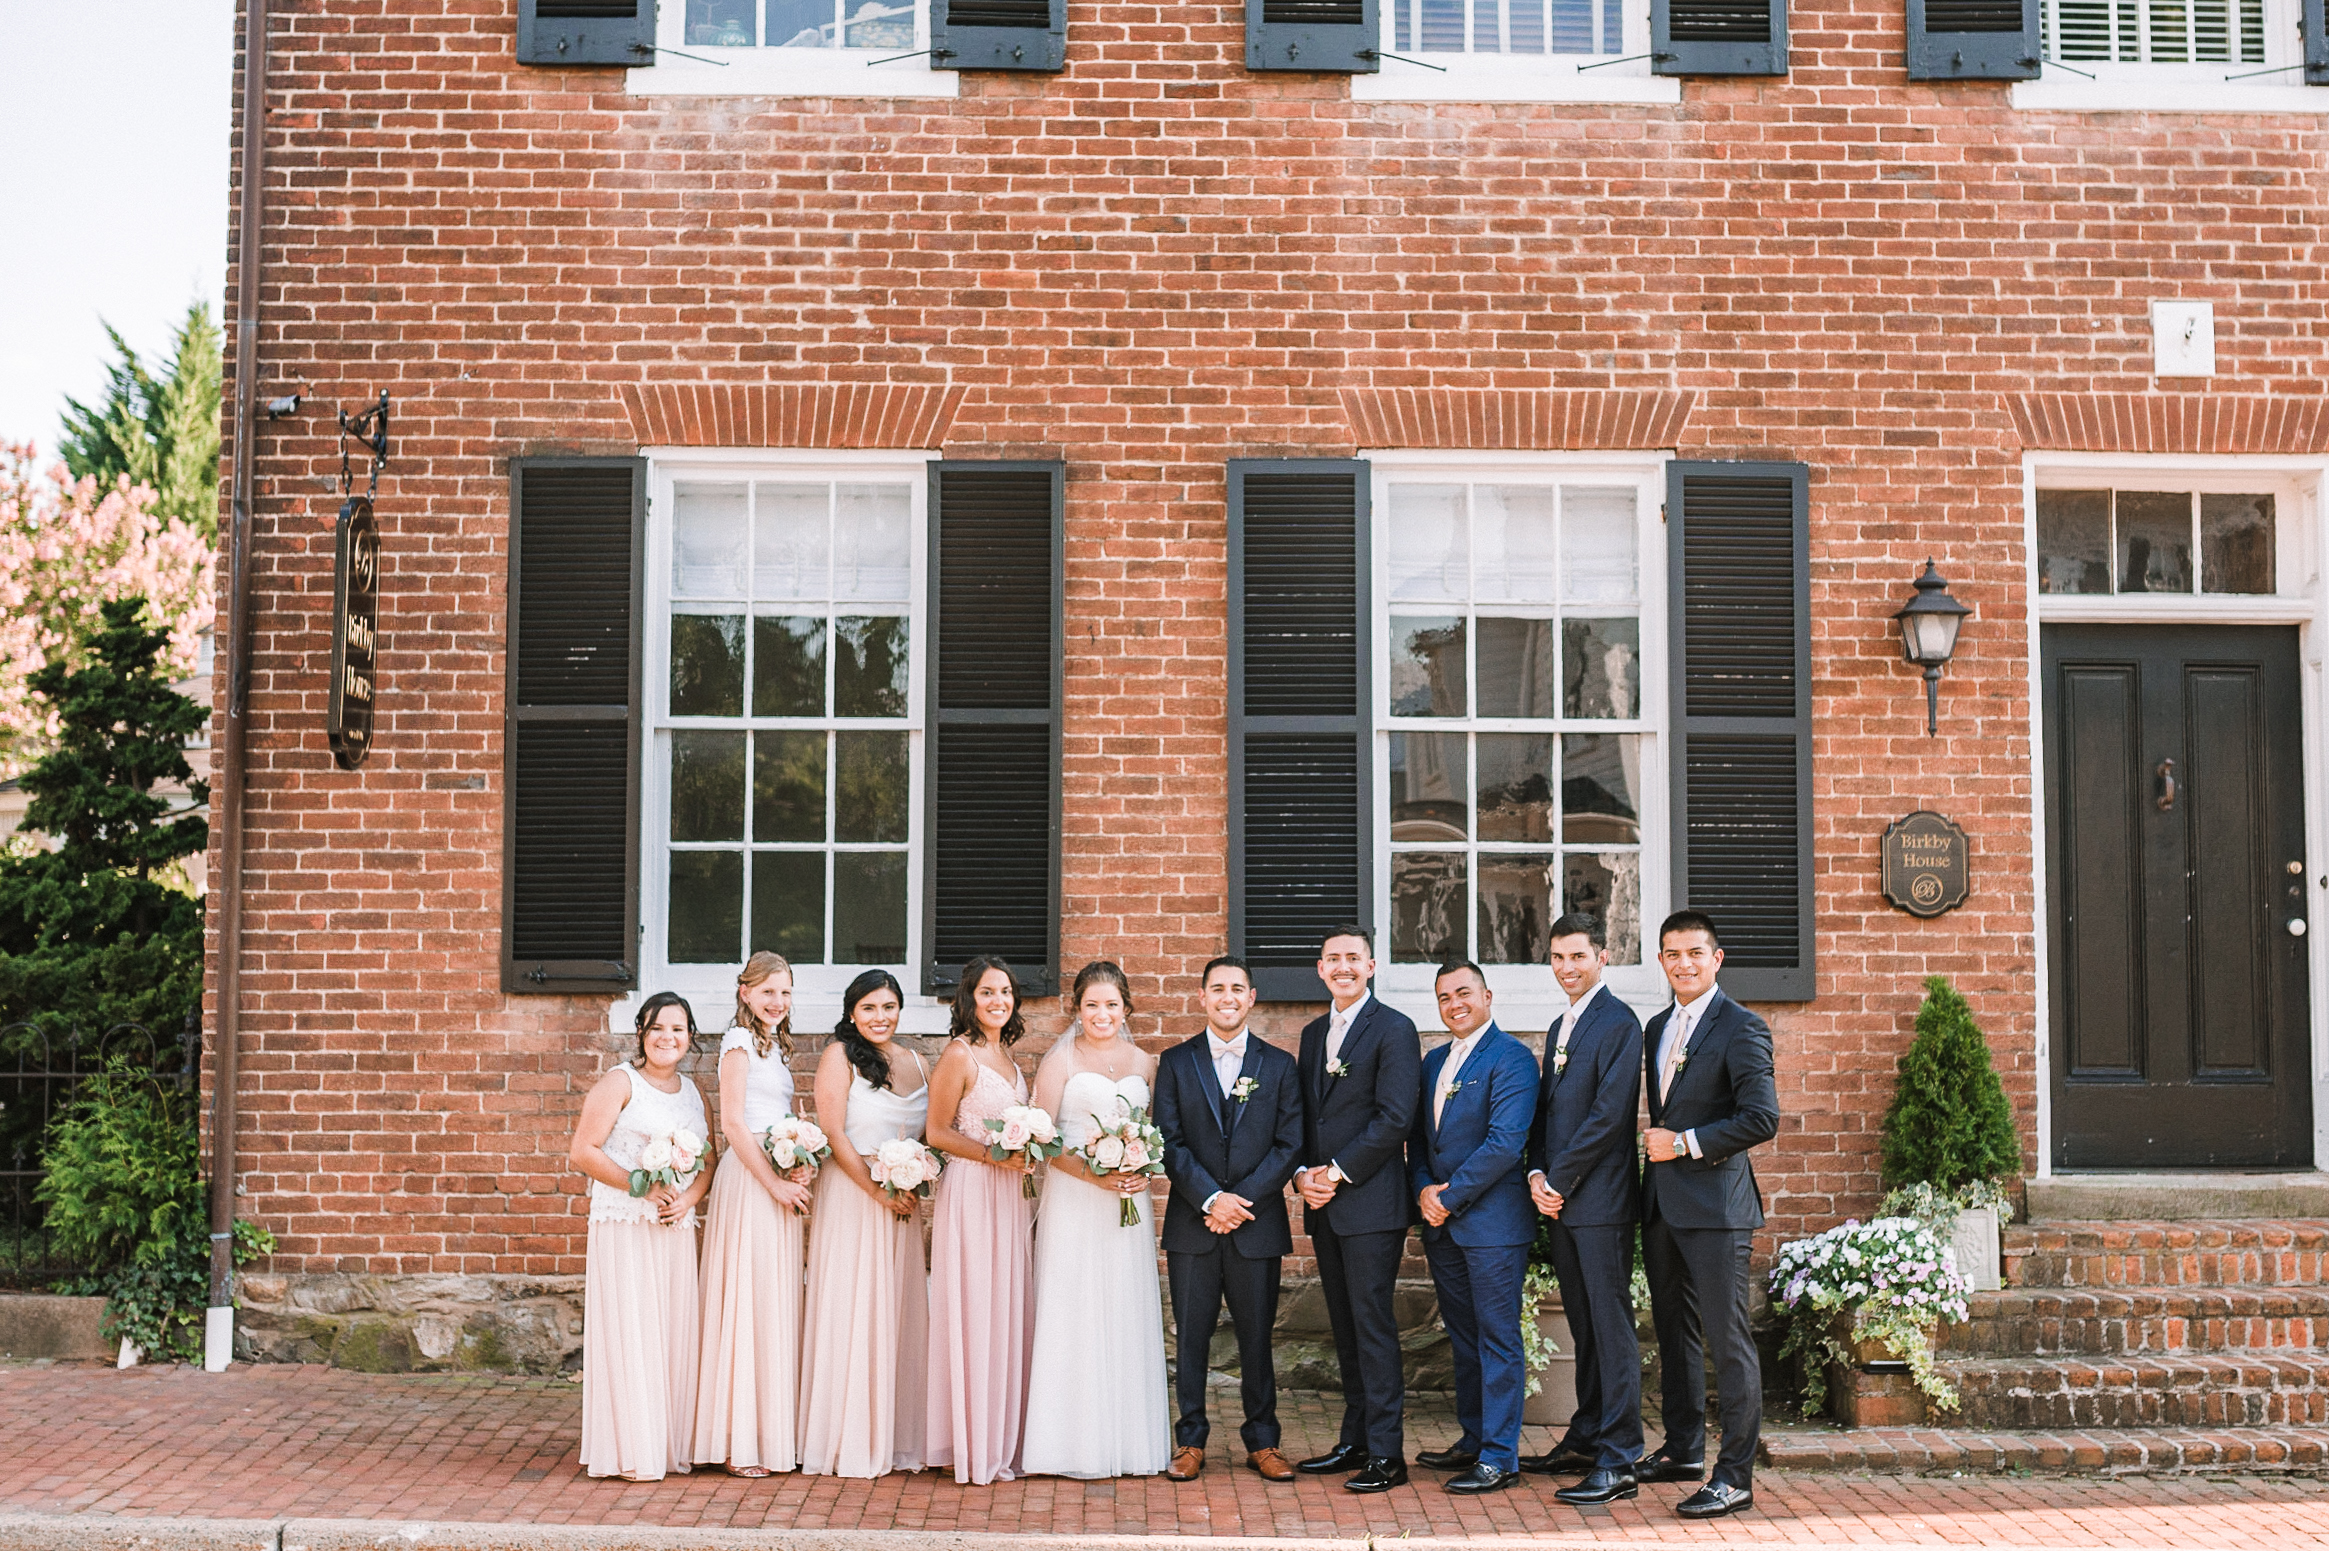 wedding party portrait at Birkby House